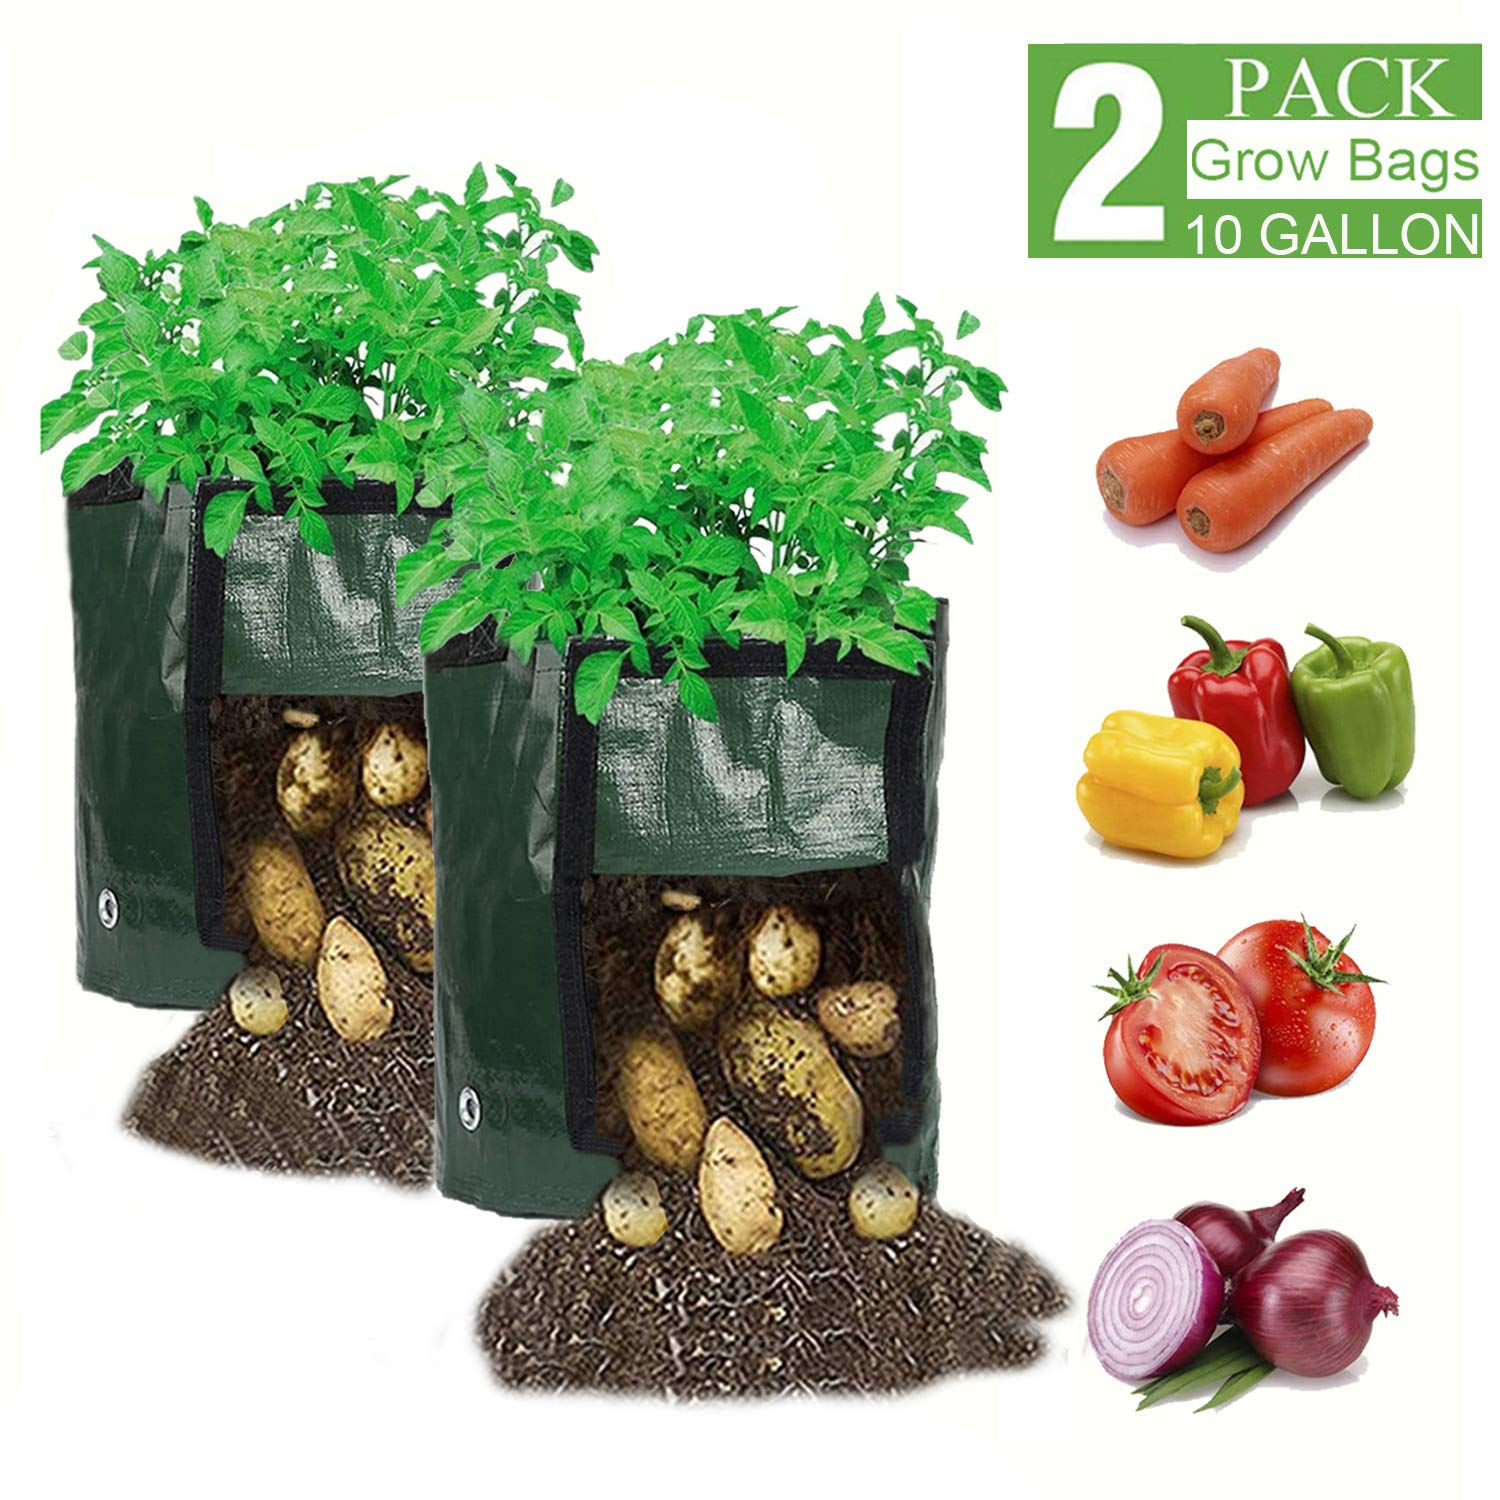 WGCC 10 Gallon Potato Grow Bags, 【2 Pack】 Plant Grow Bags with Flap and Handles Heavy Duty Thickened PE Garden Growing Bags Vegetable Planter for Potato Carrot Onion Taro Radish Peanut